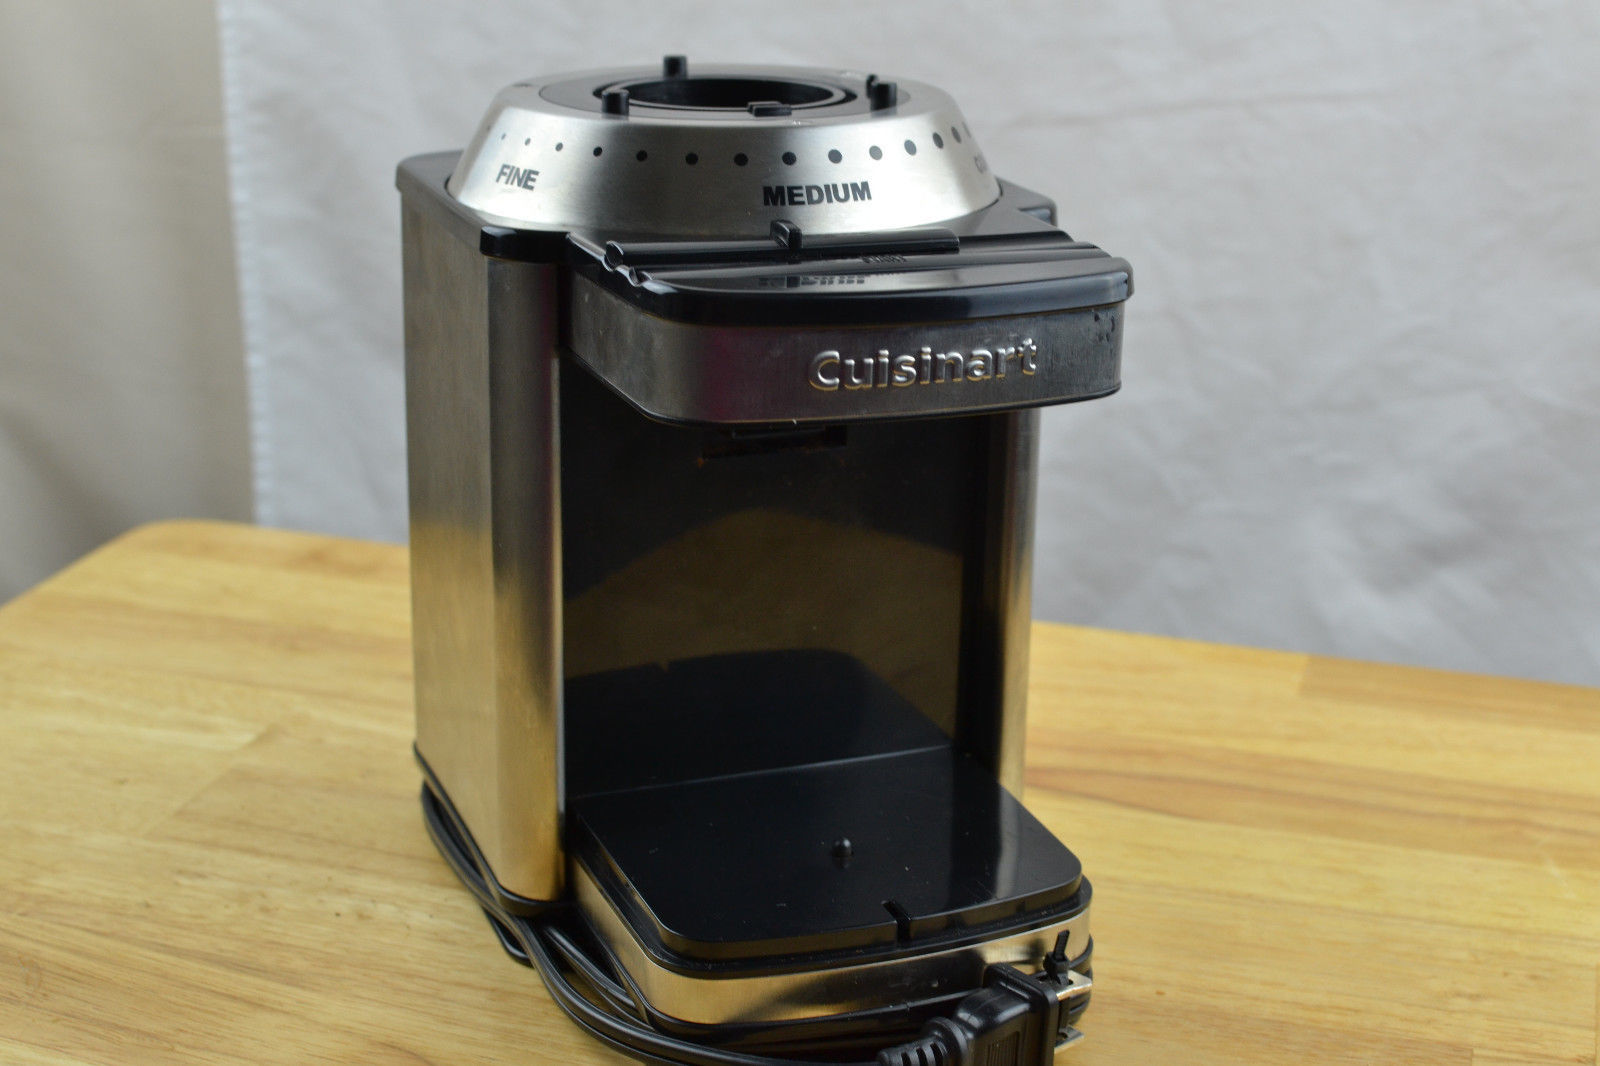 Cuisinart Coffee Maker Replacement Grinder : Cuisinart DBM-8 Burr Mill Grinder Coffee Bean Replacement Parts FREE SHIPPING - Replacement ...